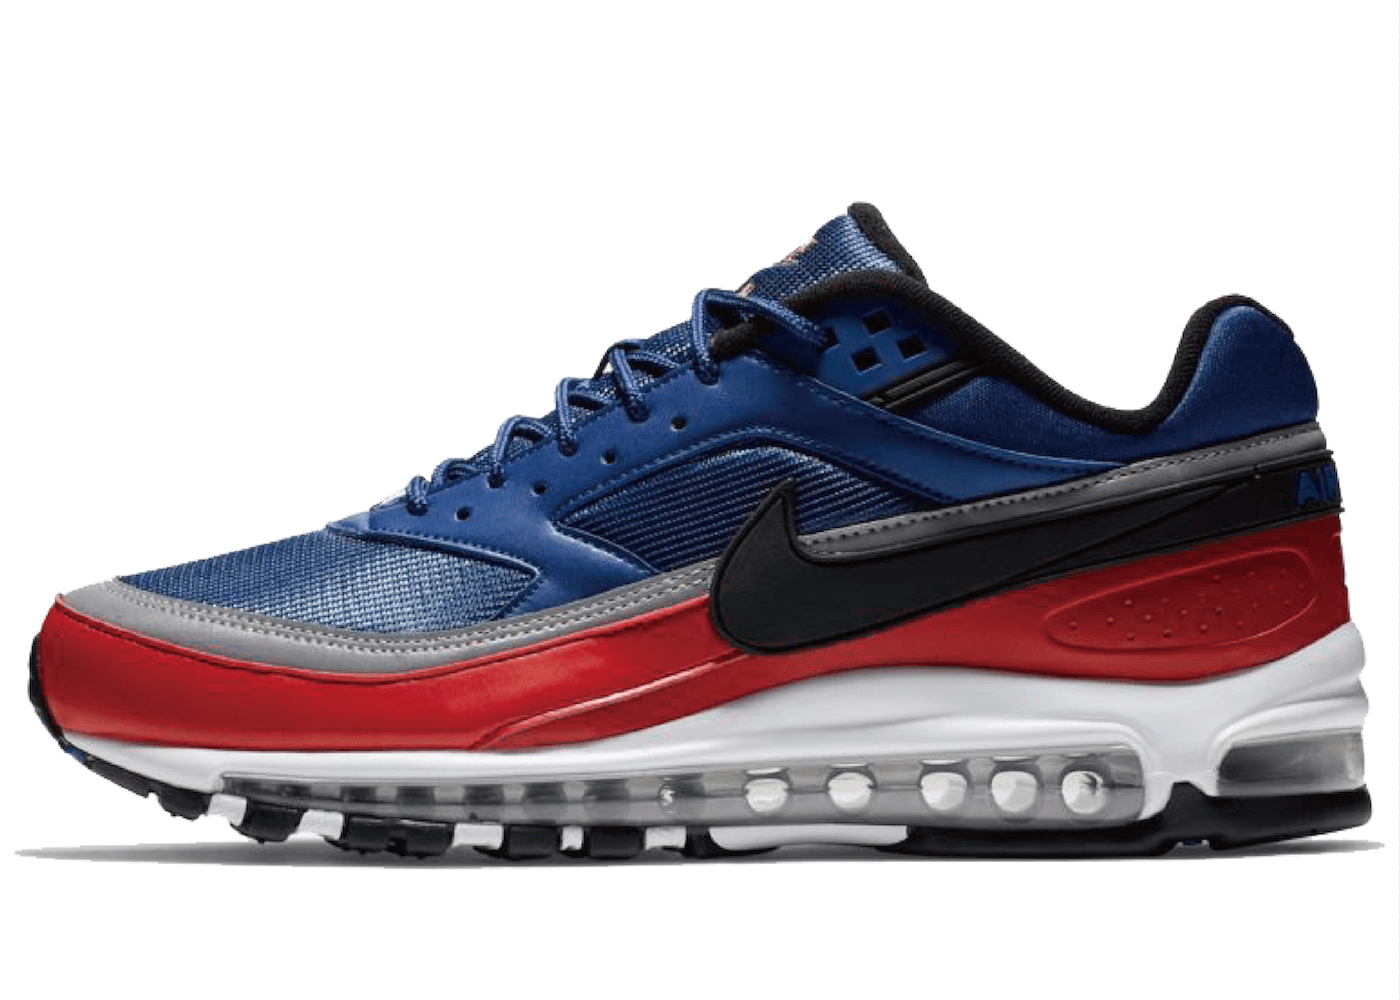 Nike Air Max 97 BW Deep Royal Blue University Red Metallic Silver の写真